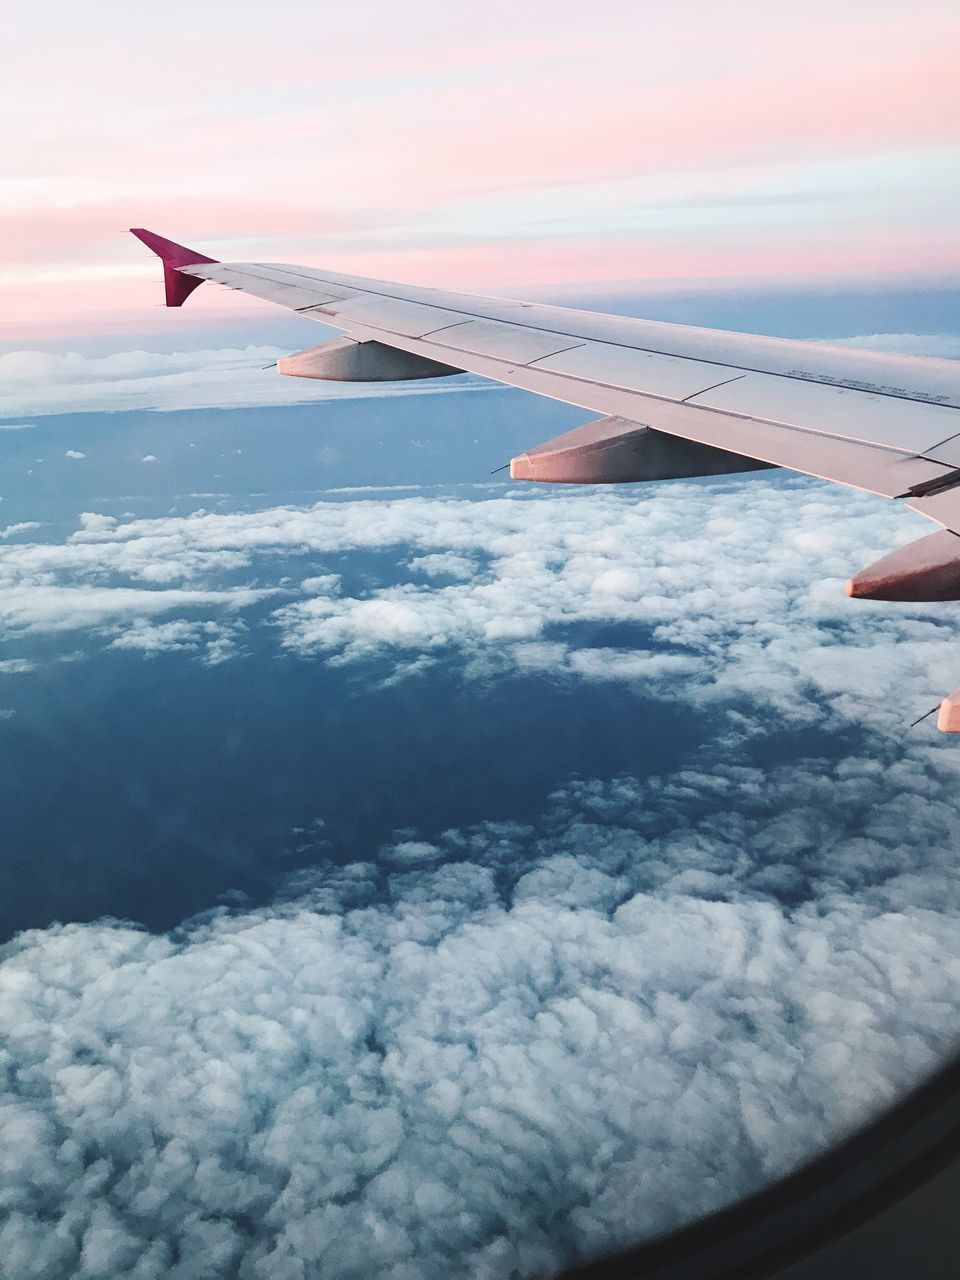 airplane, sky, cloud - sky, air vehicle, human hand, airplane wing, transportation, nature, beauty in nature, flying, mid-air, mode of transport, aerial view, outdoors, aircraft wing, day, real people, scenics, one person, human body part, people